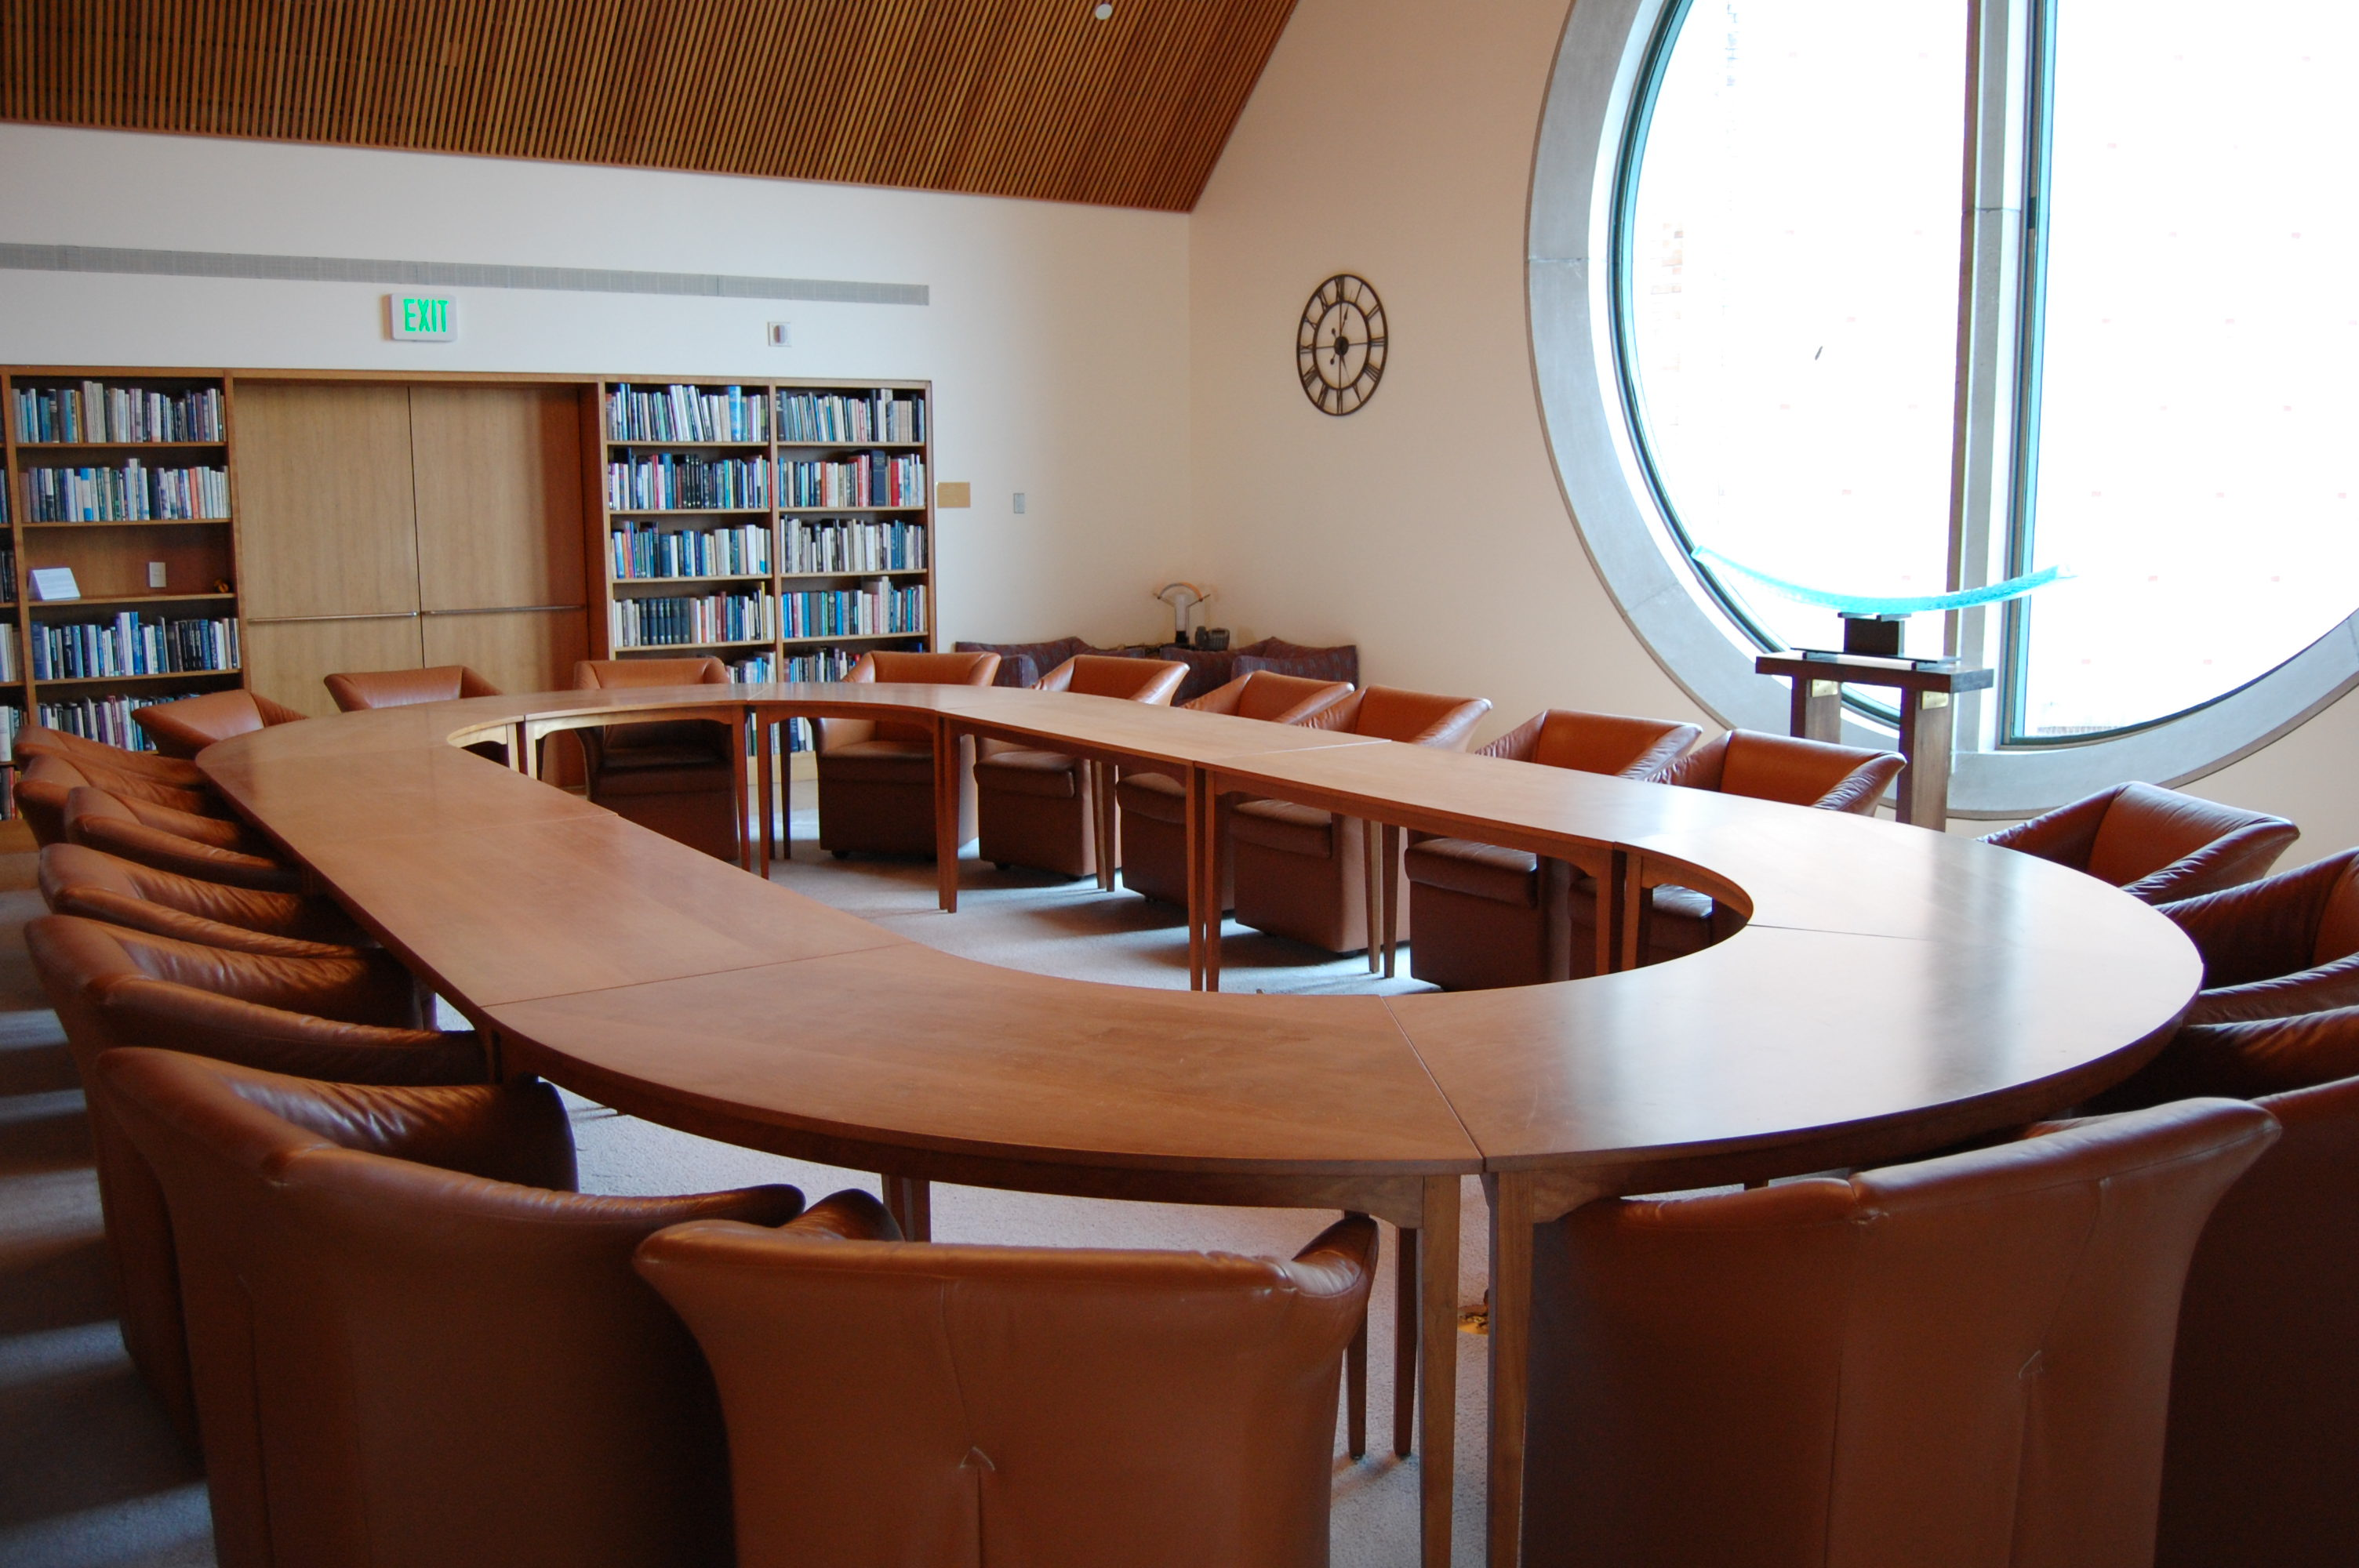 Petersen Room Conference Table UW Libraries - Large round meeting table